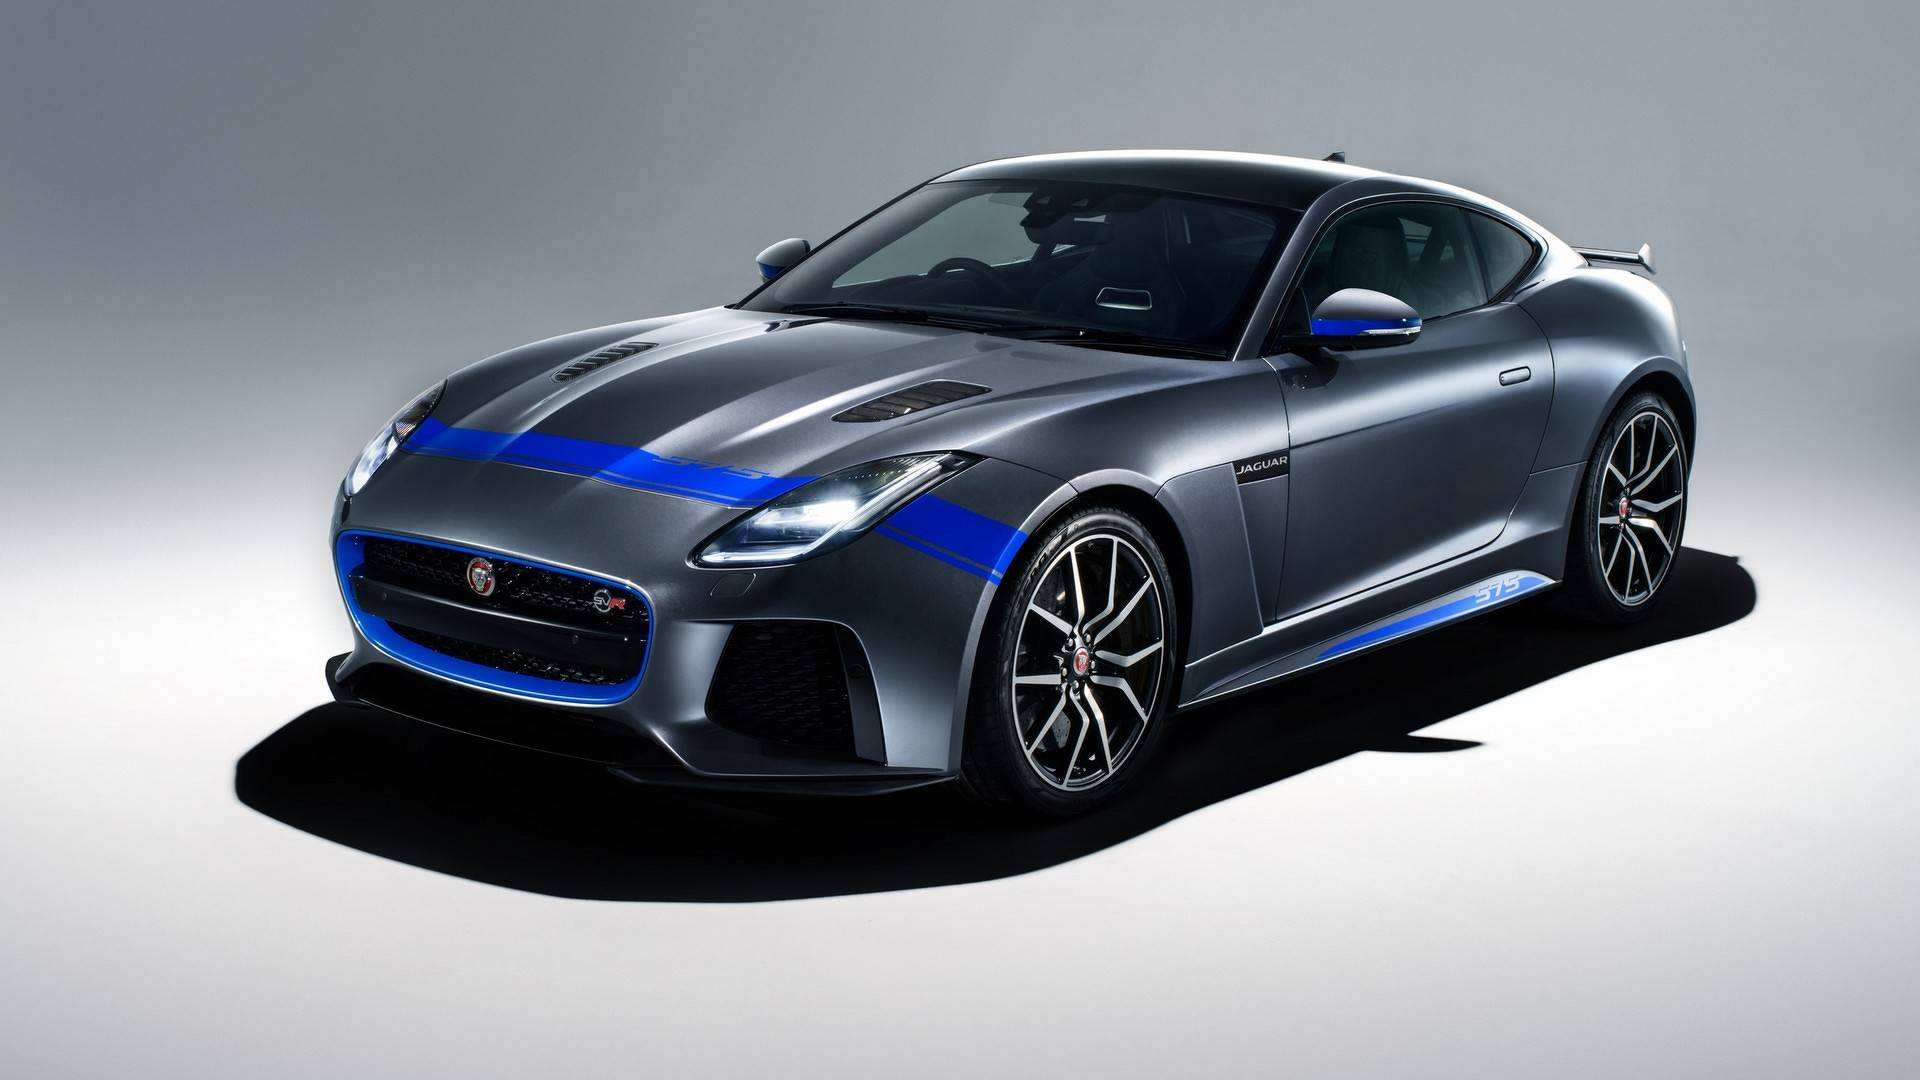 13 All New Jaguar J Type 2020 Price Release Date And Concept